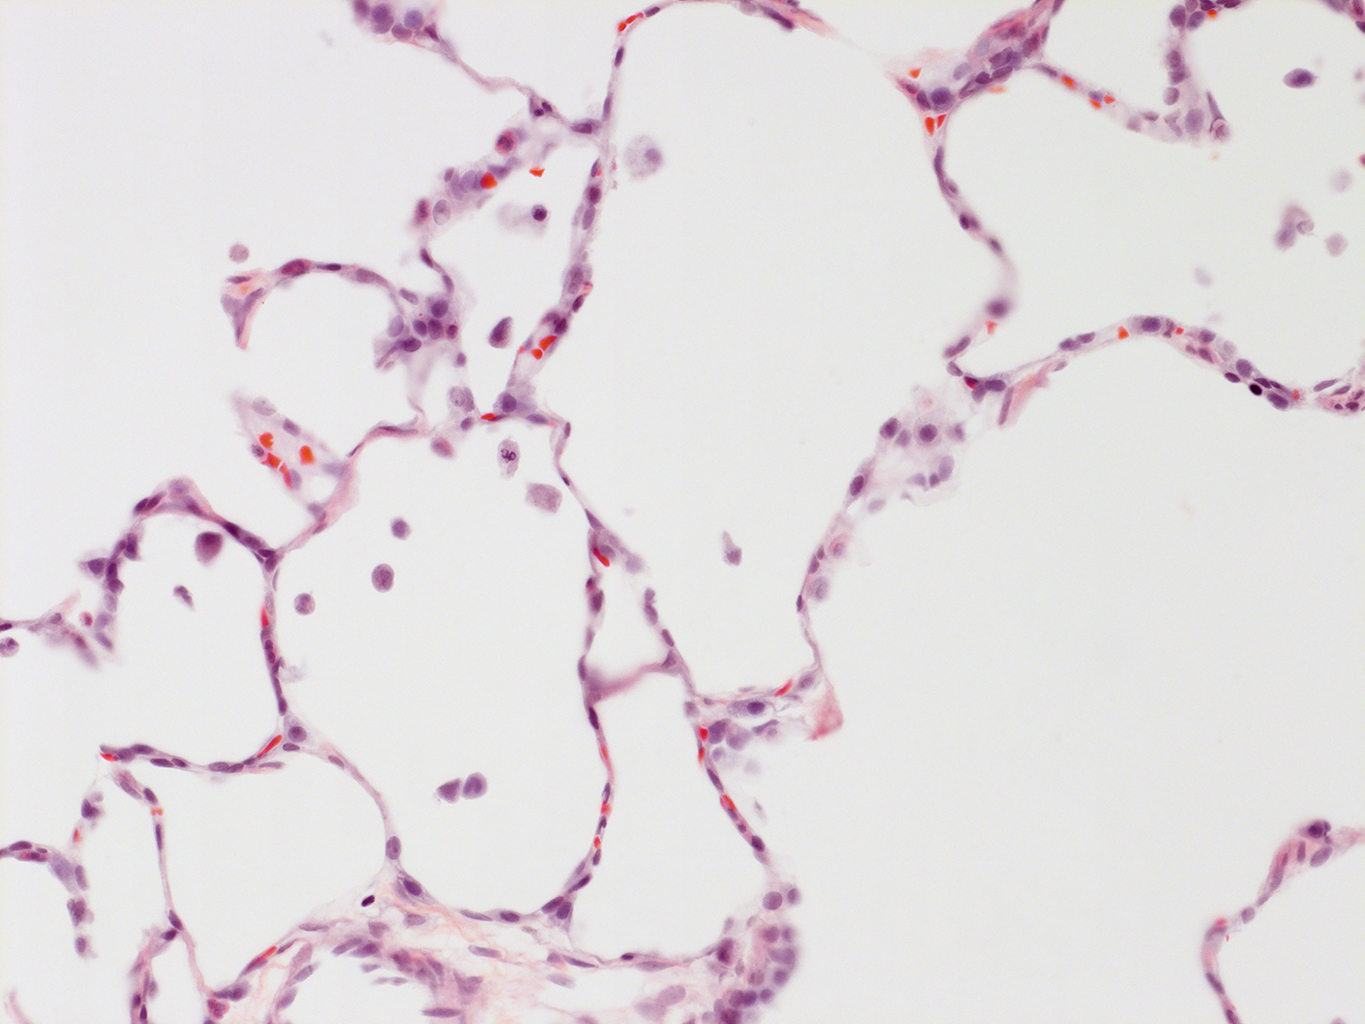 H&E Staining of 14 Month-Old Human Lung from Donor D072-RLL-14B2